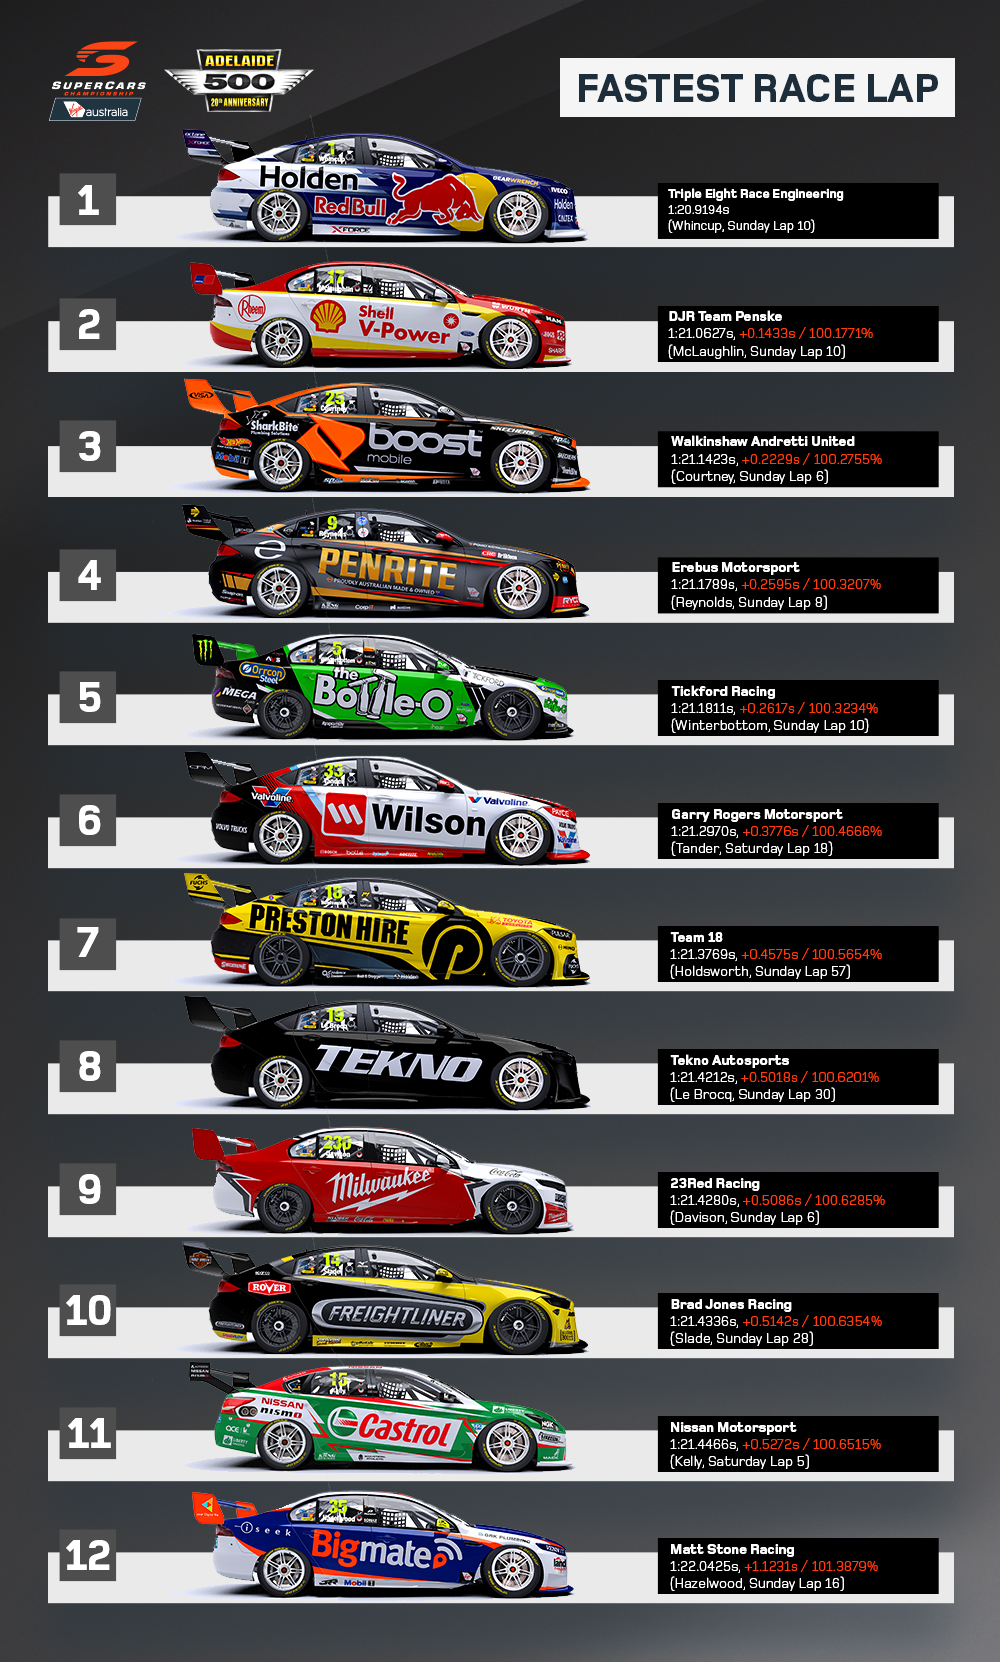 2018 Adelaide 500 - Fastest Race Lap (3)